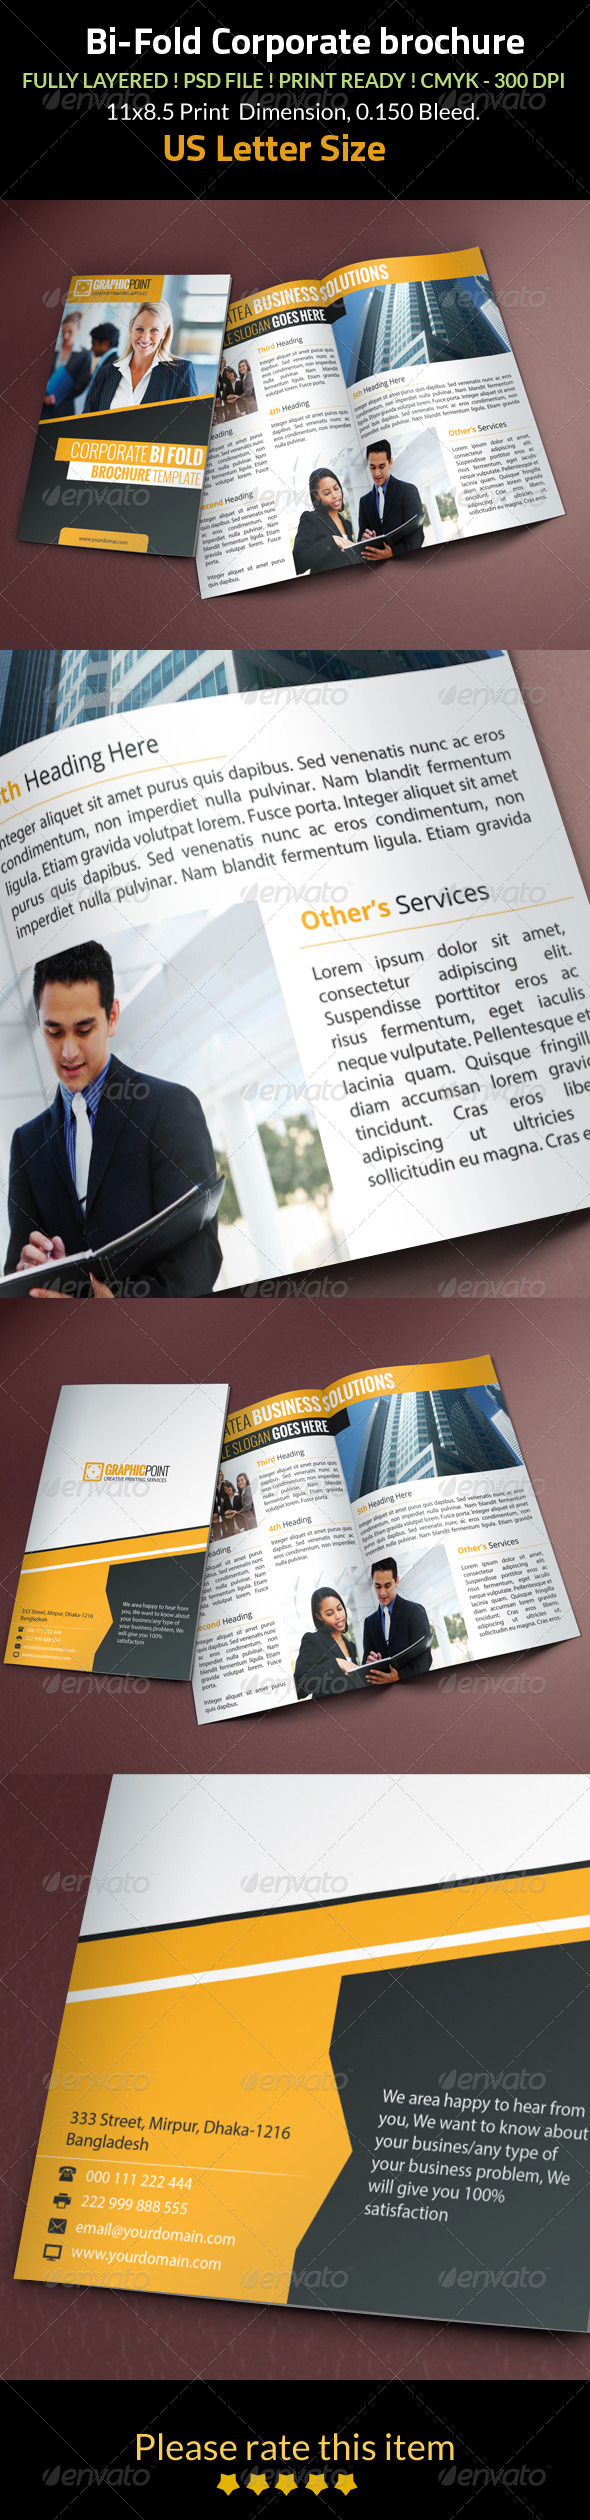 GraphicRiver Bi Fold Corporate Brochure 8253353